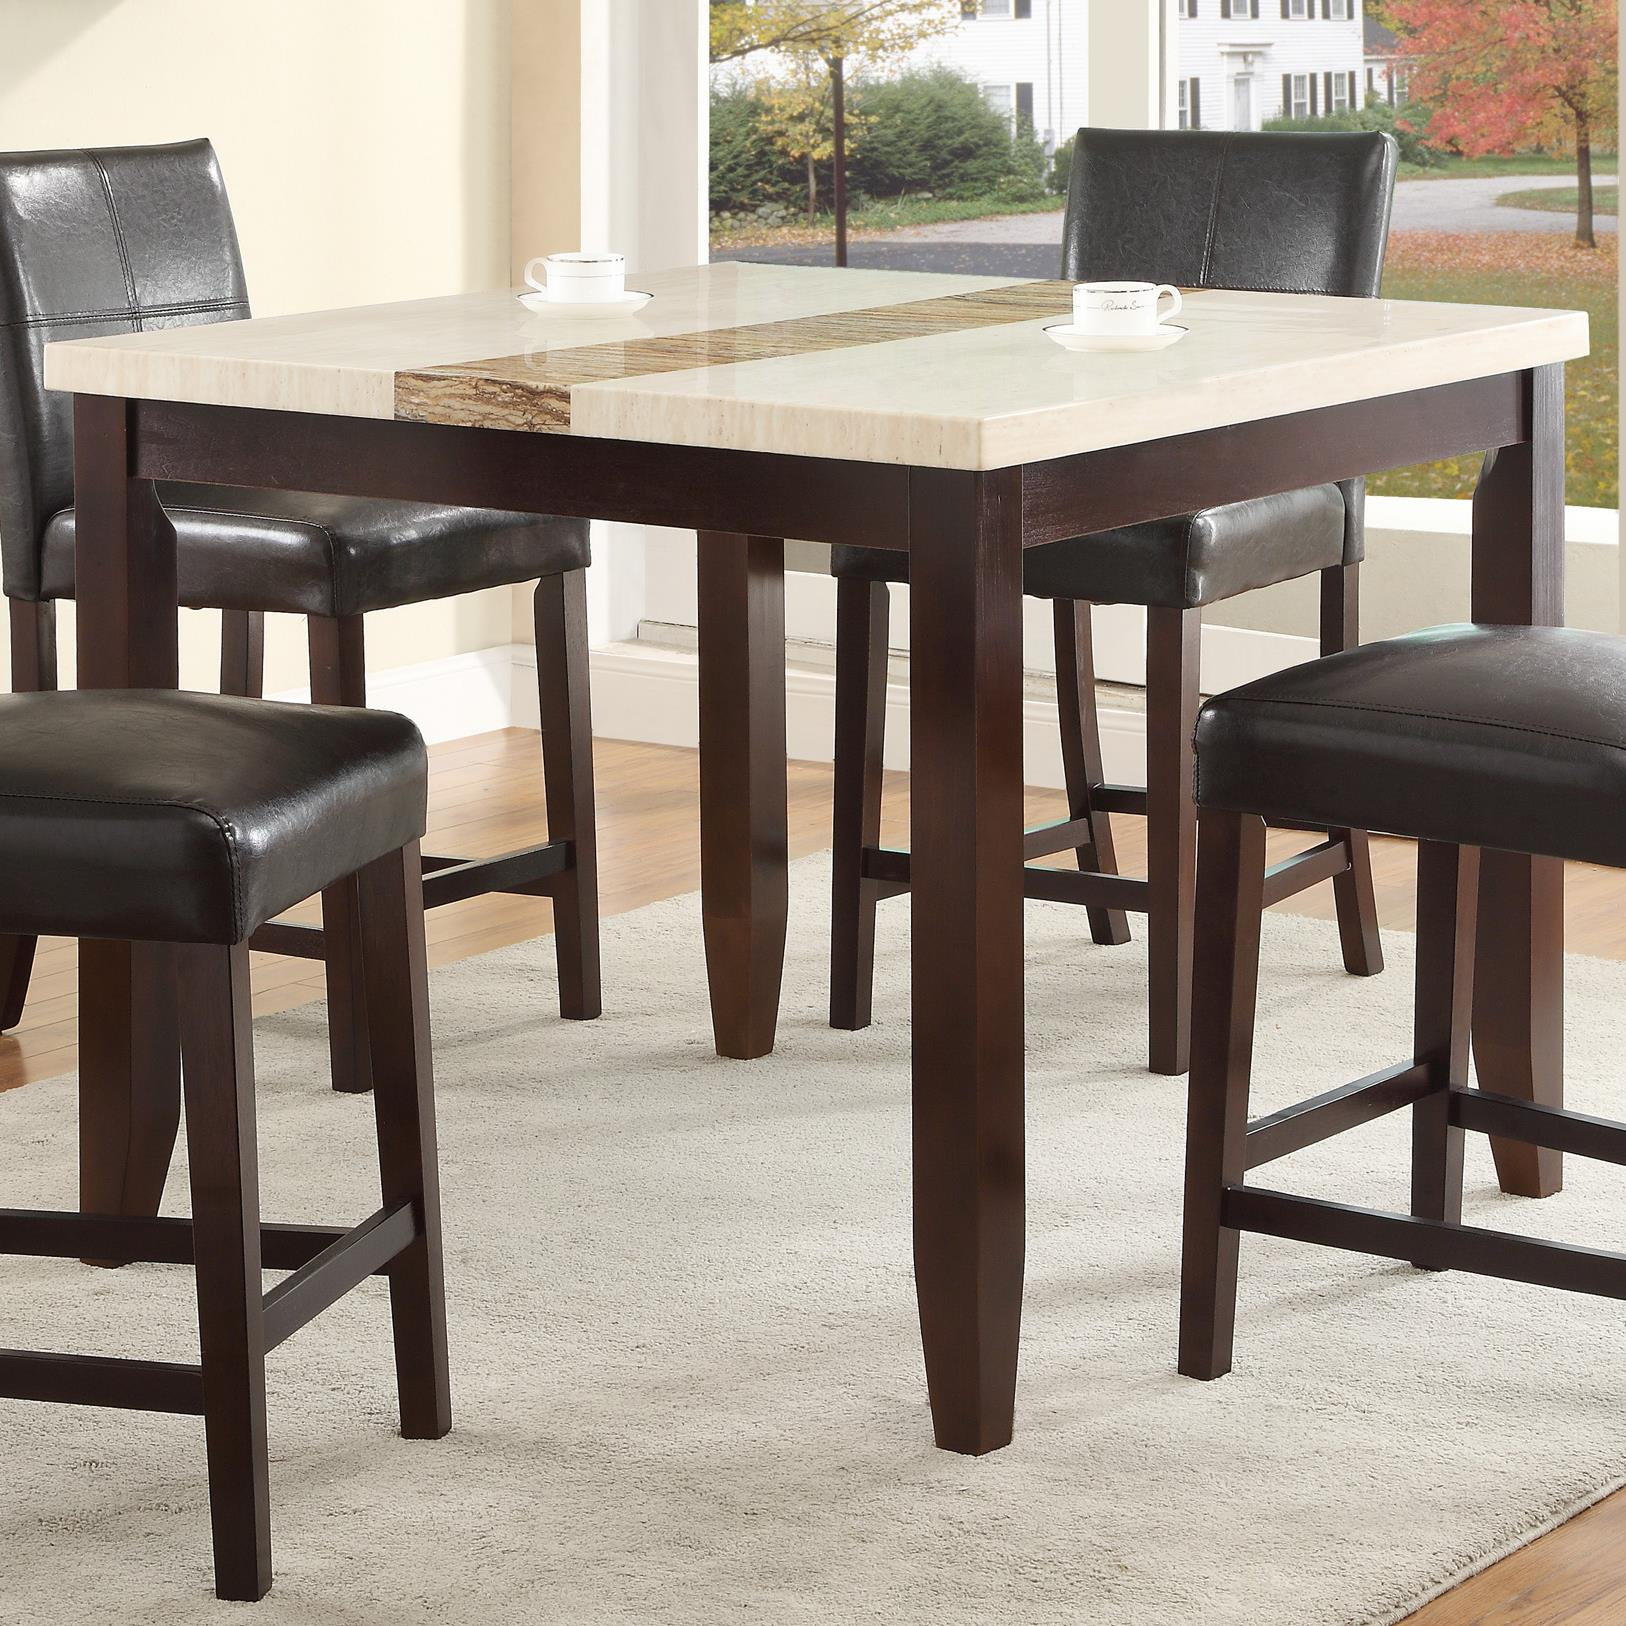 Crown mark larissa 2722t 4242 square counter height dining for Markup table